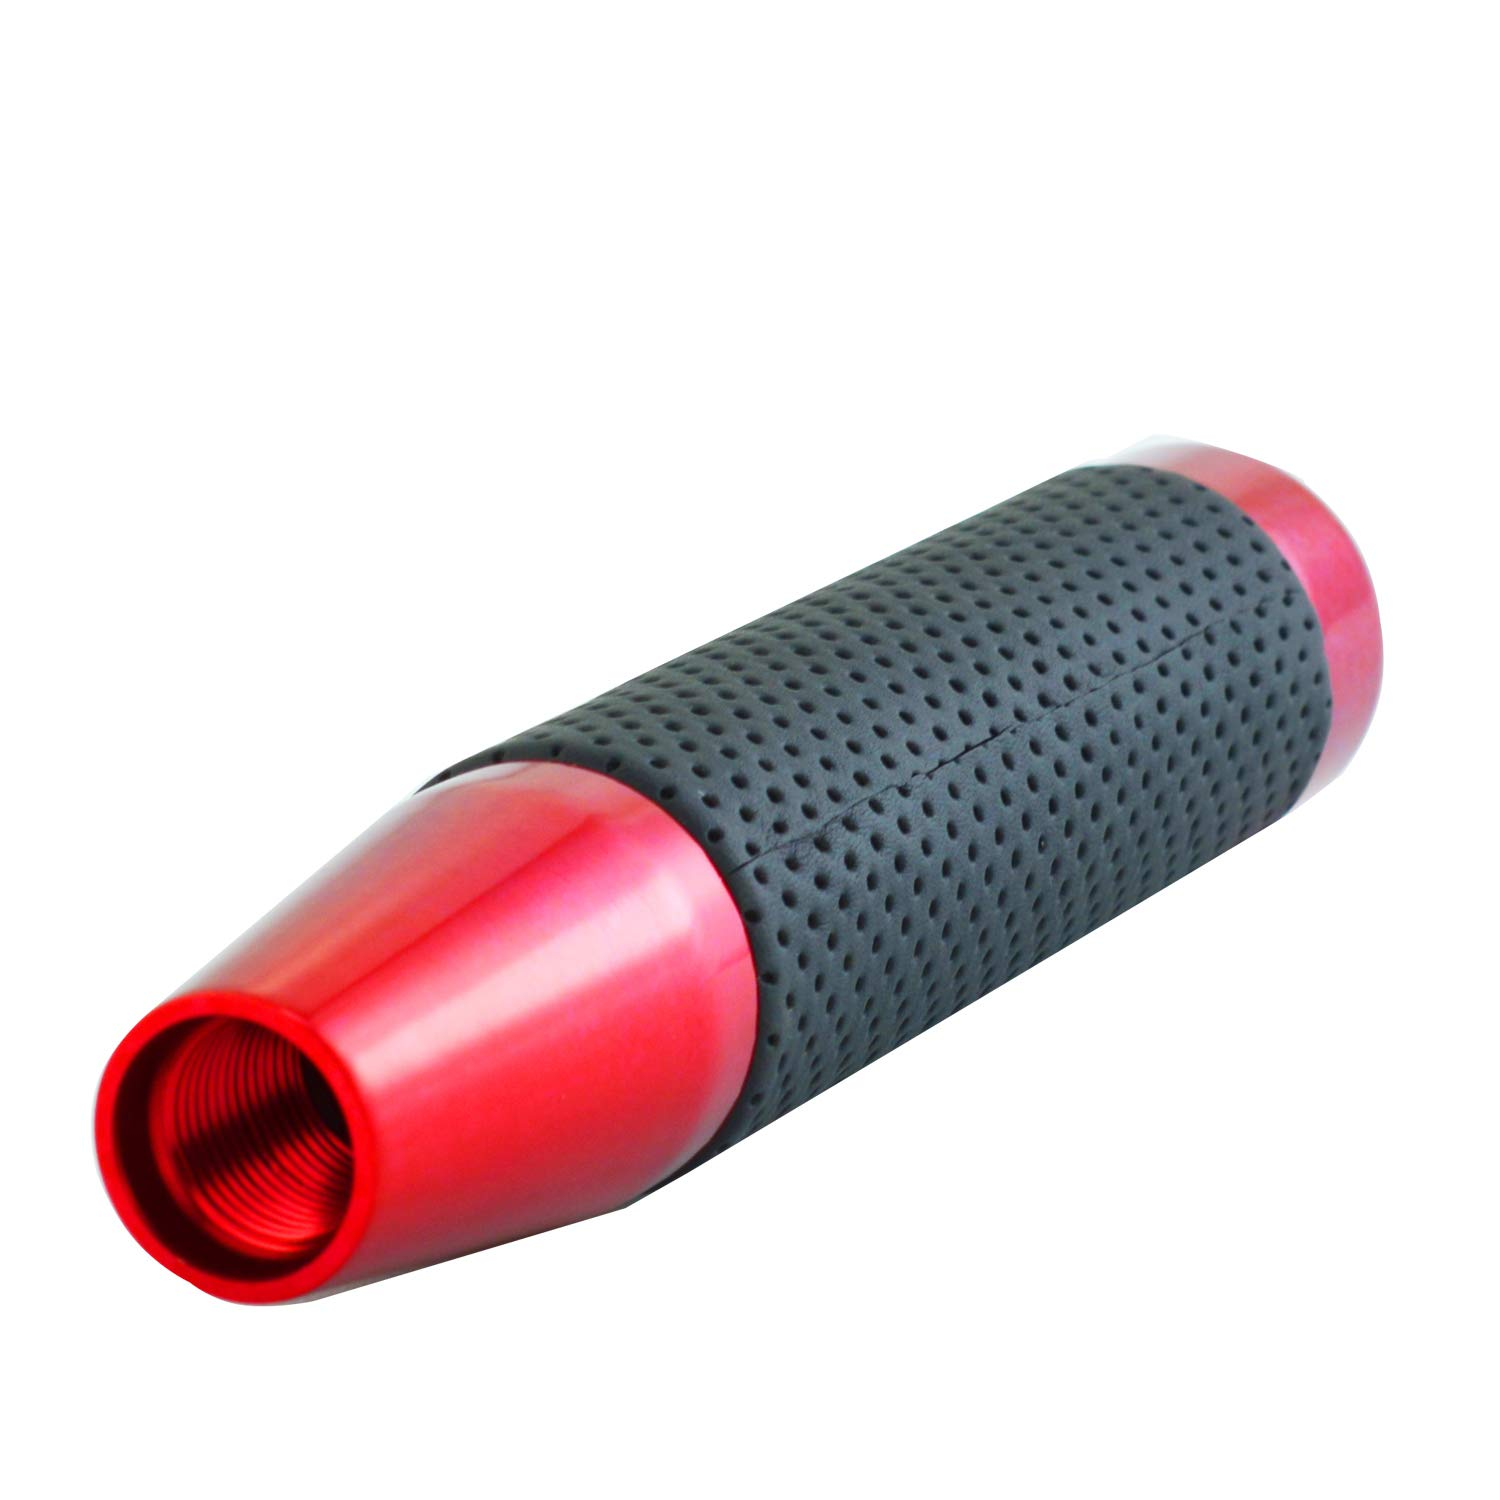 Red Bashineng 7 Inch Length Universal Gear Shift Head Leather Alloy Stick Shifter Knob Fit Most Automatic Manual Cars